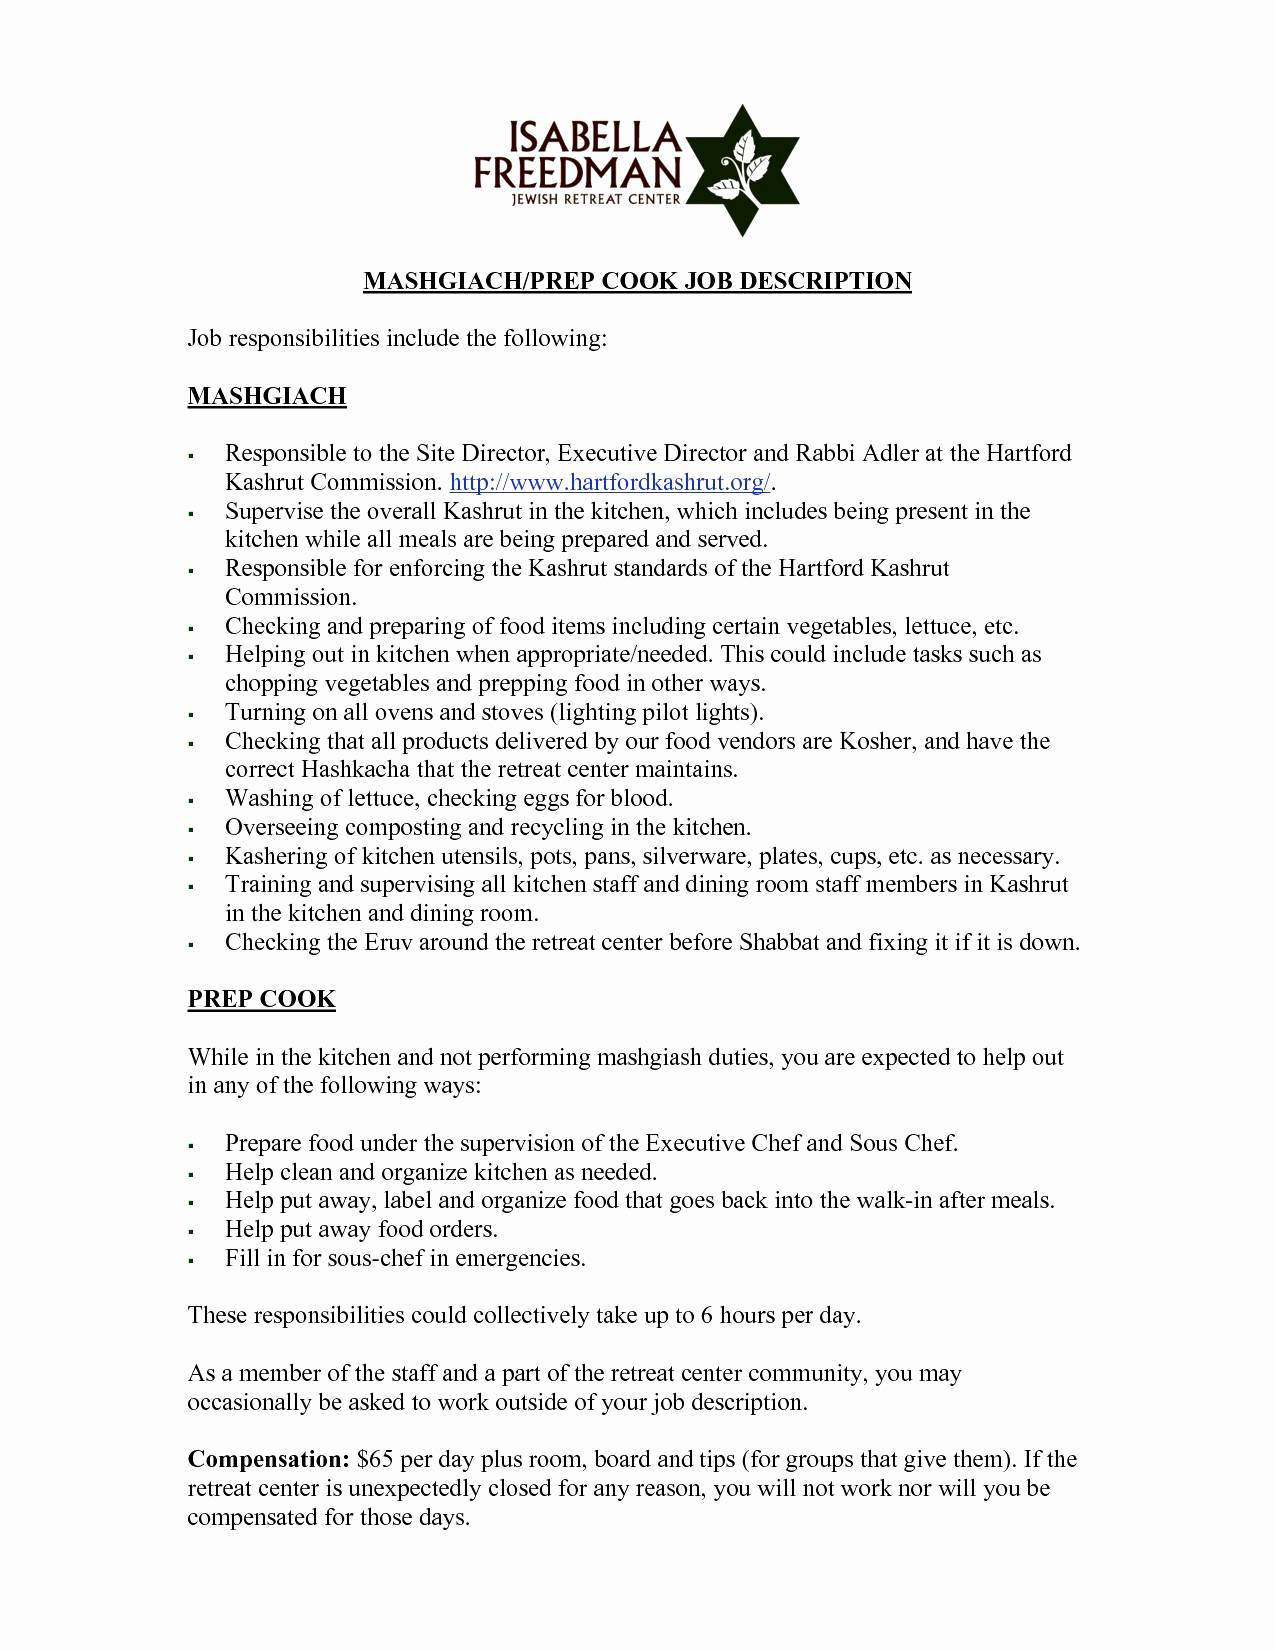 Help Desk Cover Letter Template - Help with Writing A Cover Letter Fresh Marketing Director Cover